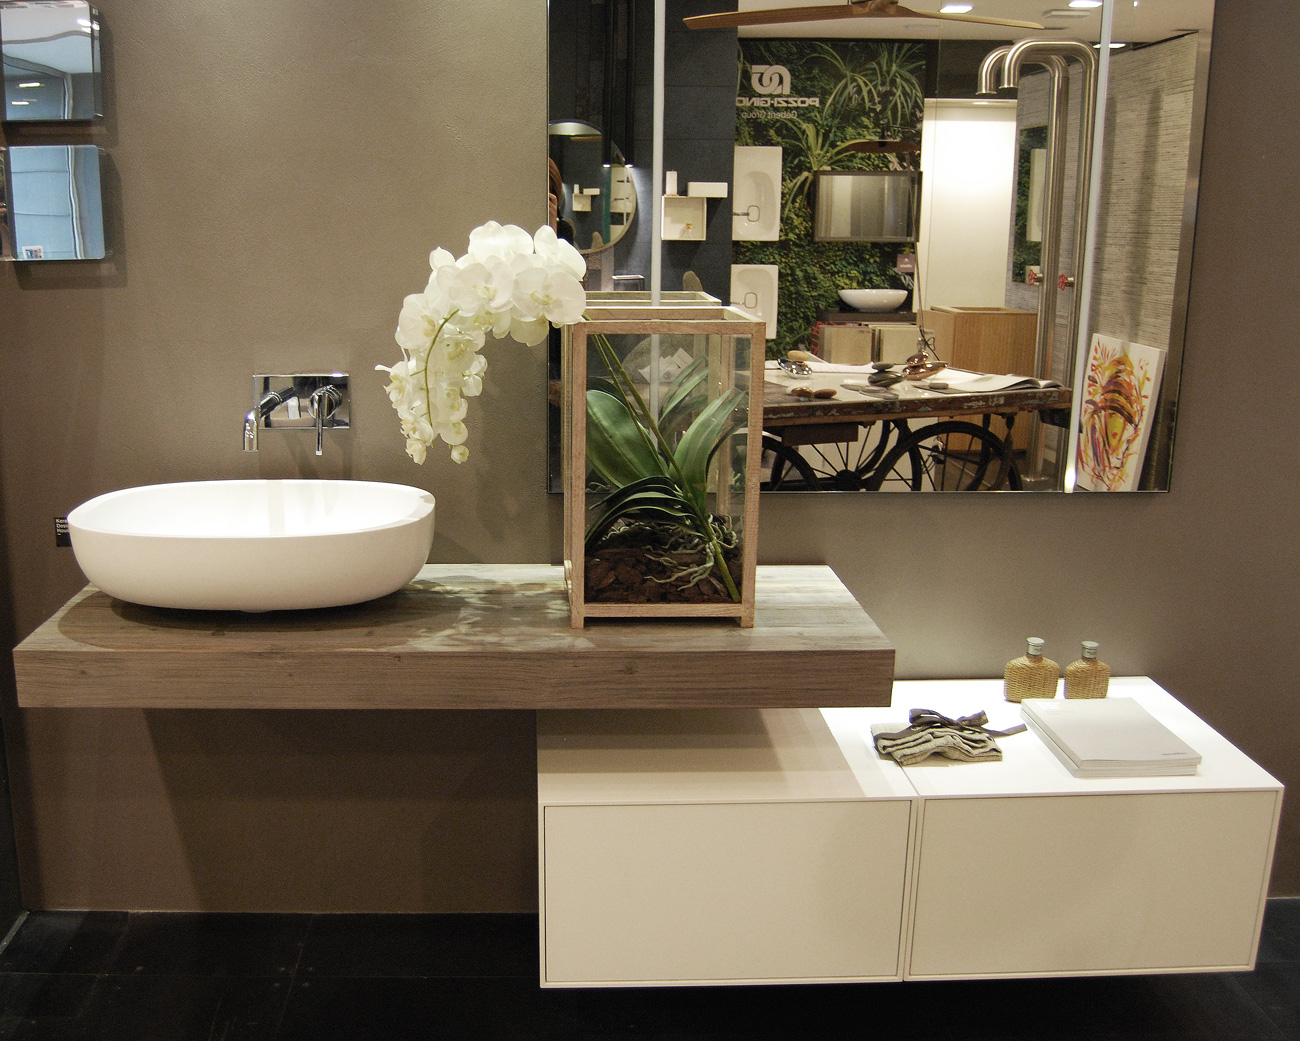 Mobile arredo bagno Boffi  Edilcomes Superfici e Design